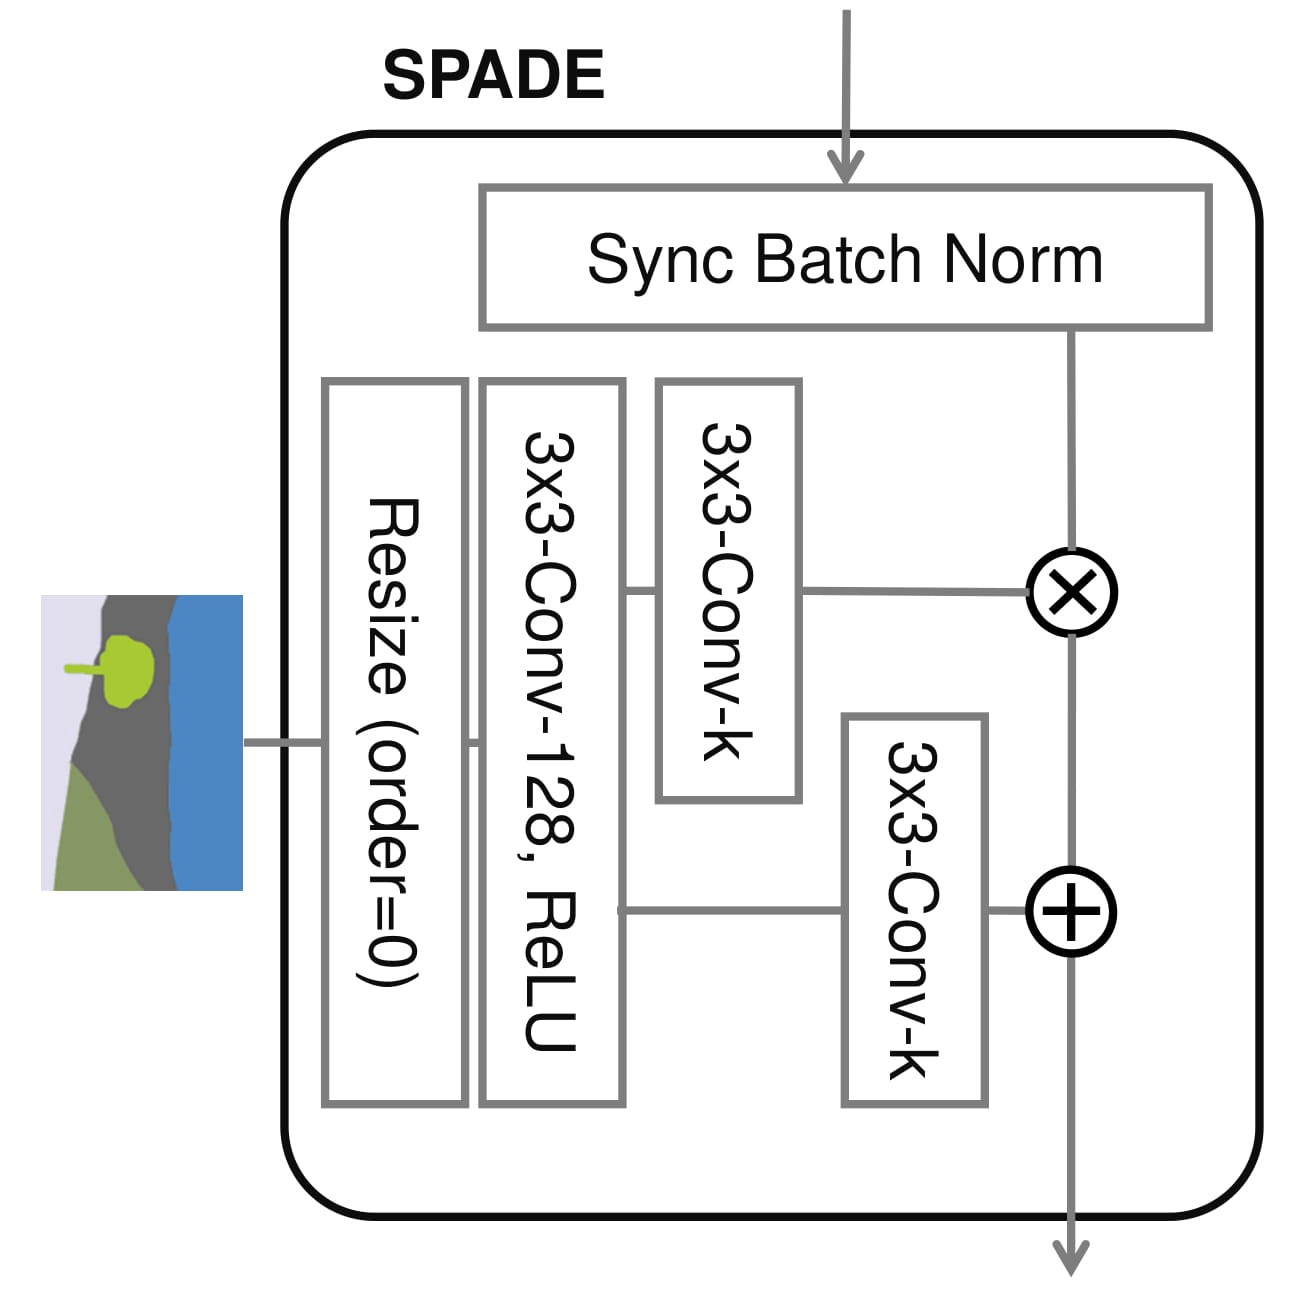 SPADE: State of the art in Image-to-Image Translation by Nvidia